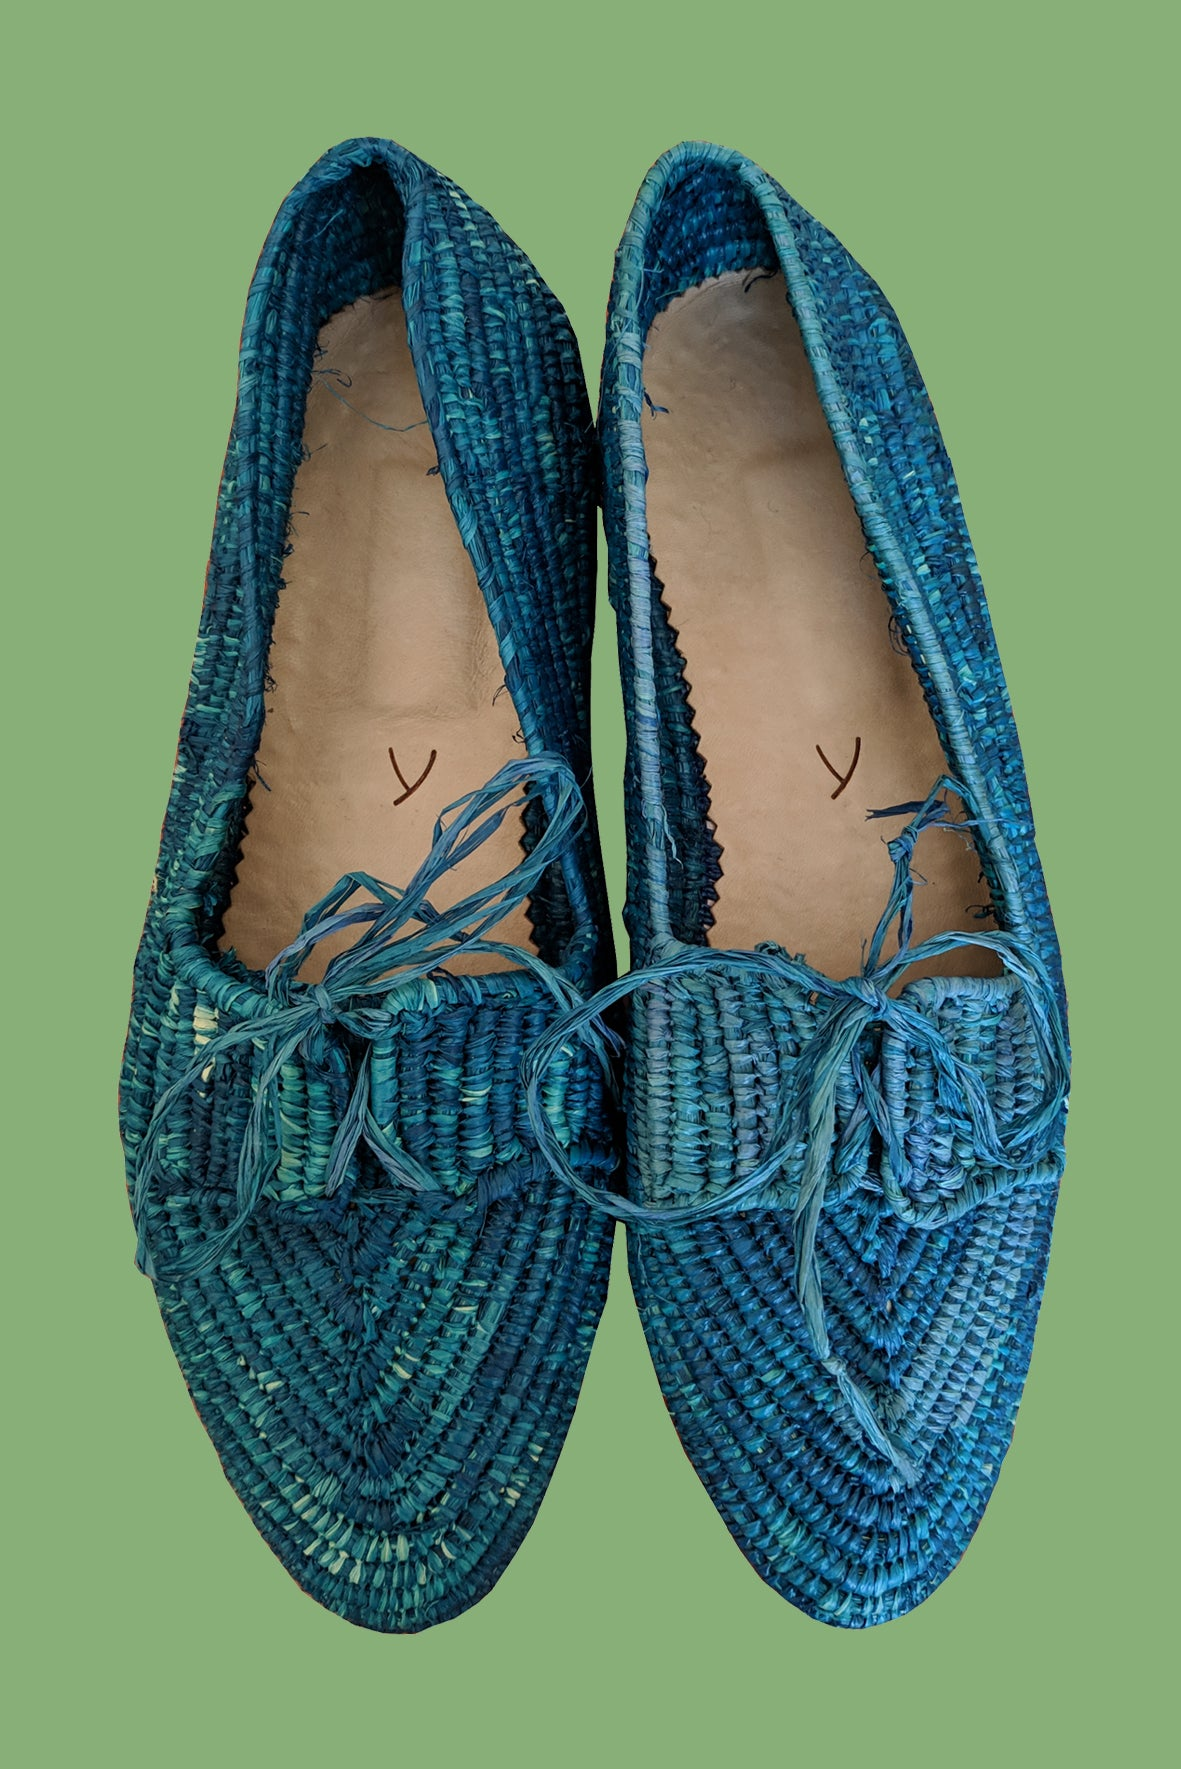 Raffia Summer Shoes | Blue | Shoes | ABURY | [product_tag] - Fair Bazaar Ethical Living